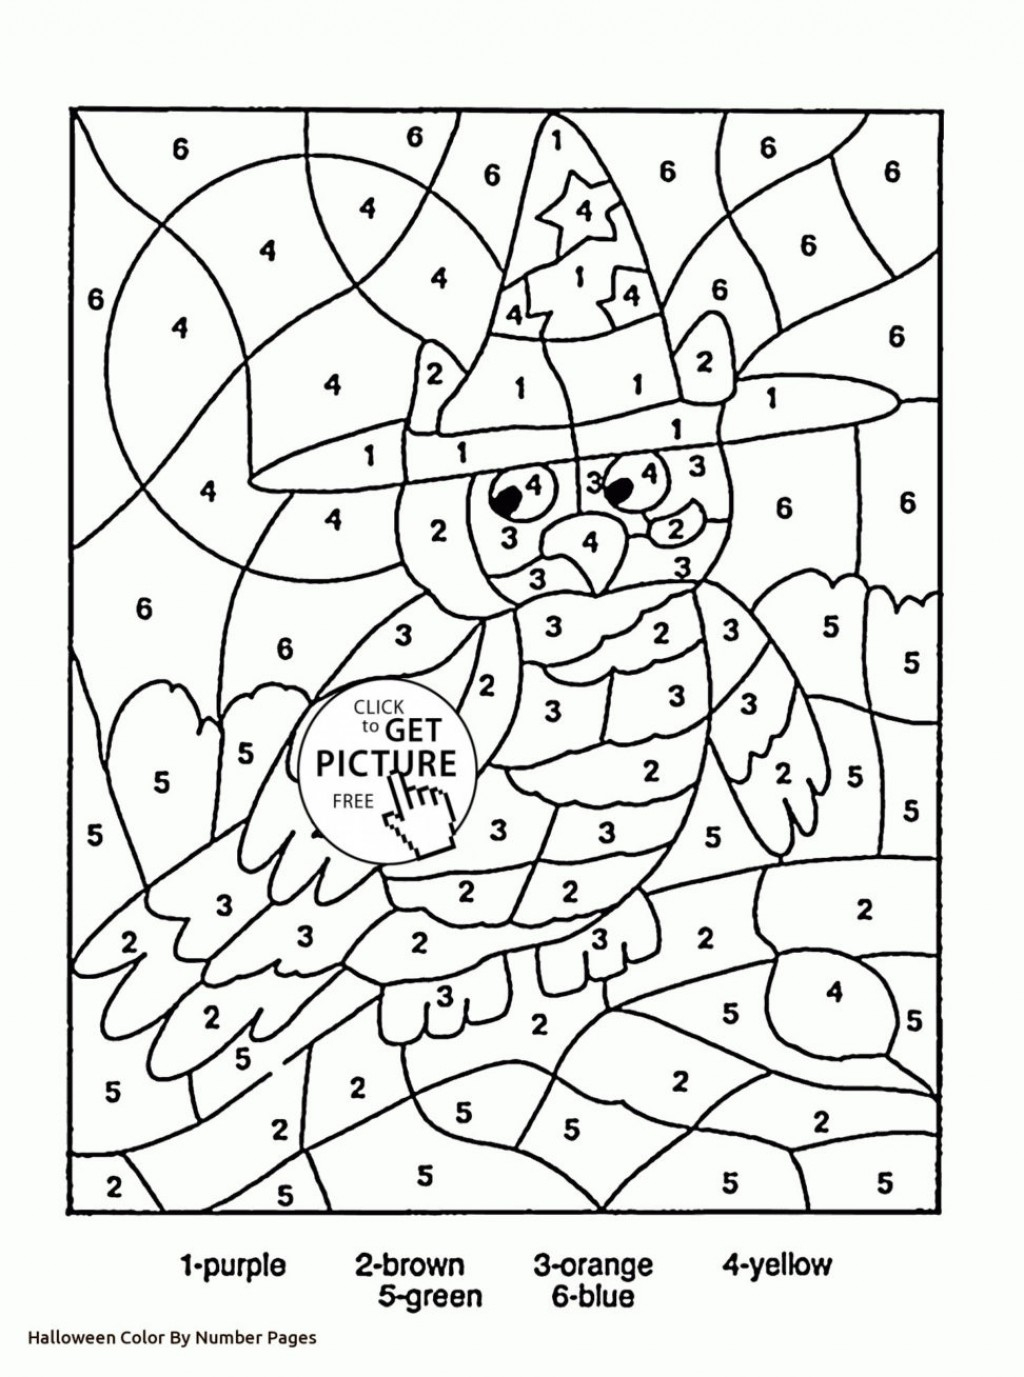 Math Worksheets Colornumber 4Th Grade Coloring Pages Fresh - Free Printable Multiplication Color By Number